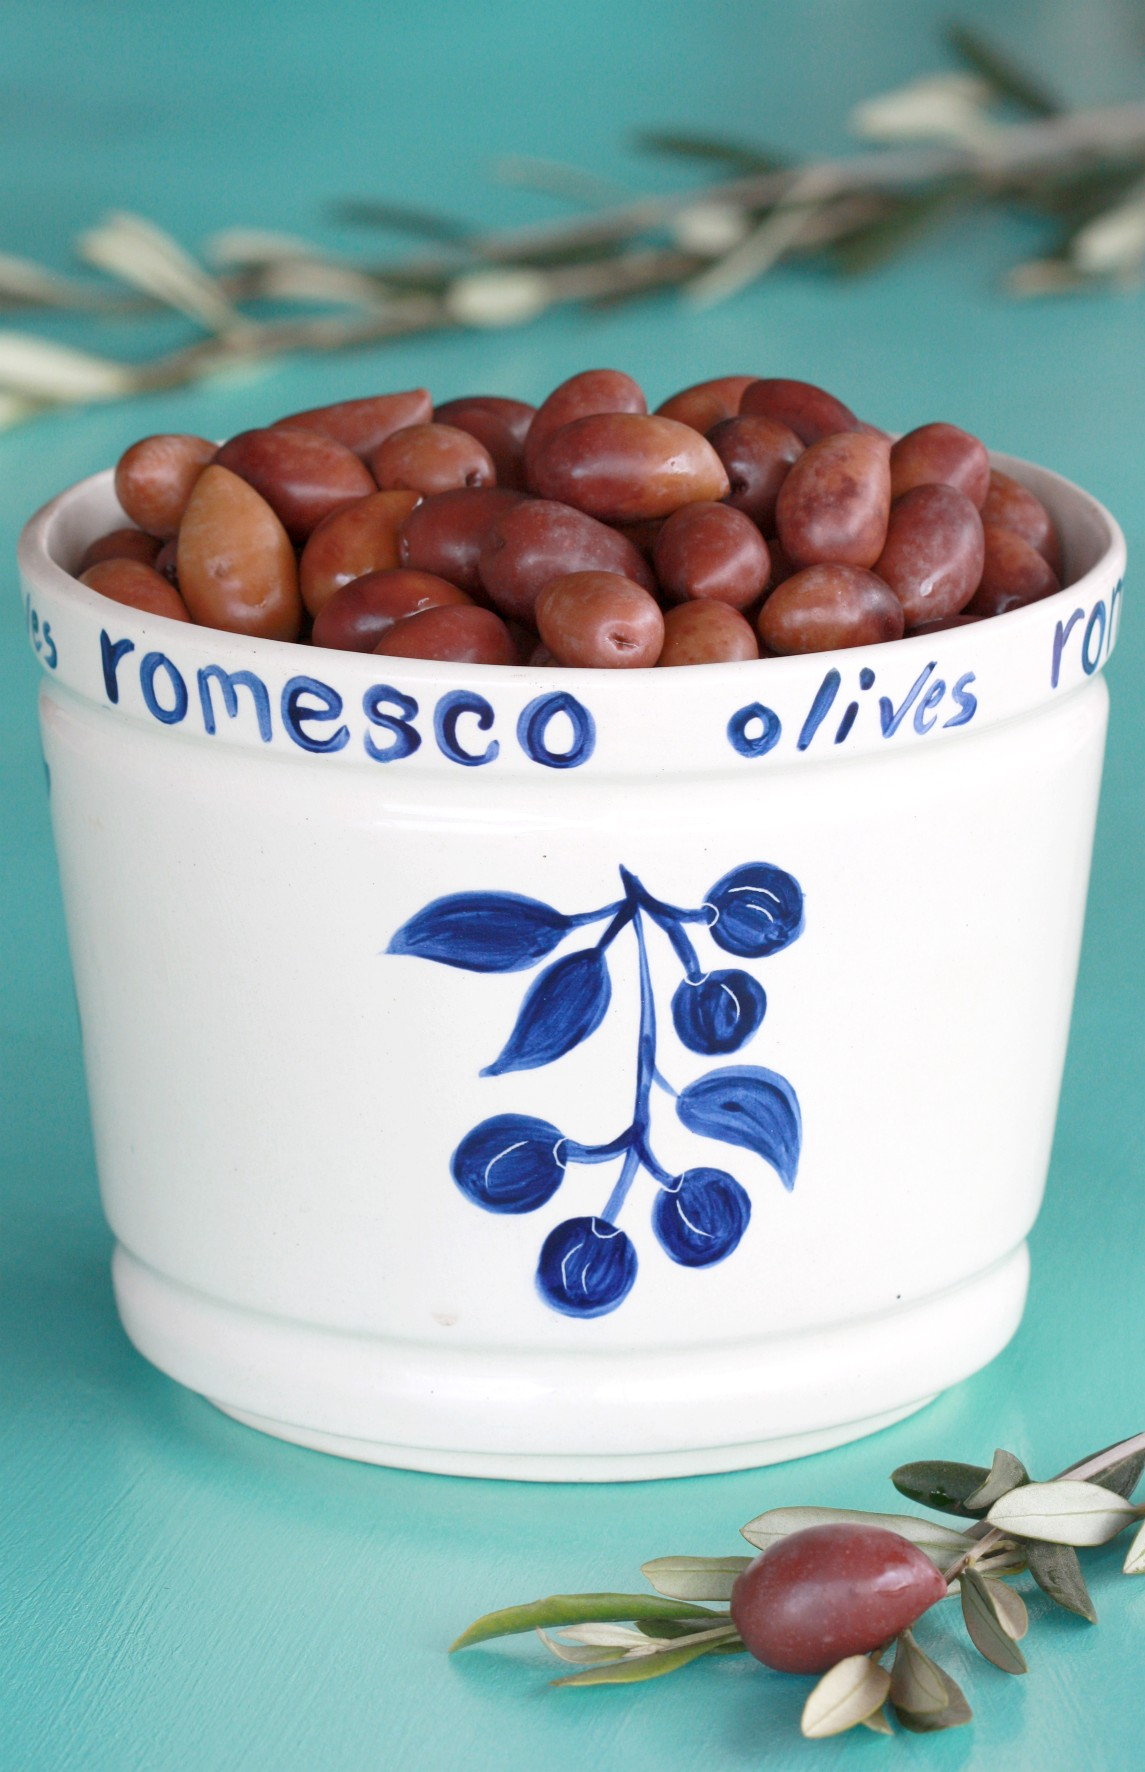 Romesco Olives Corporate Shoots 2018